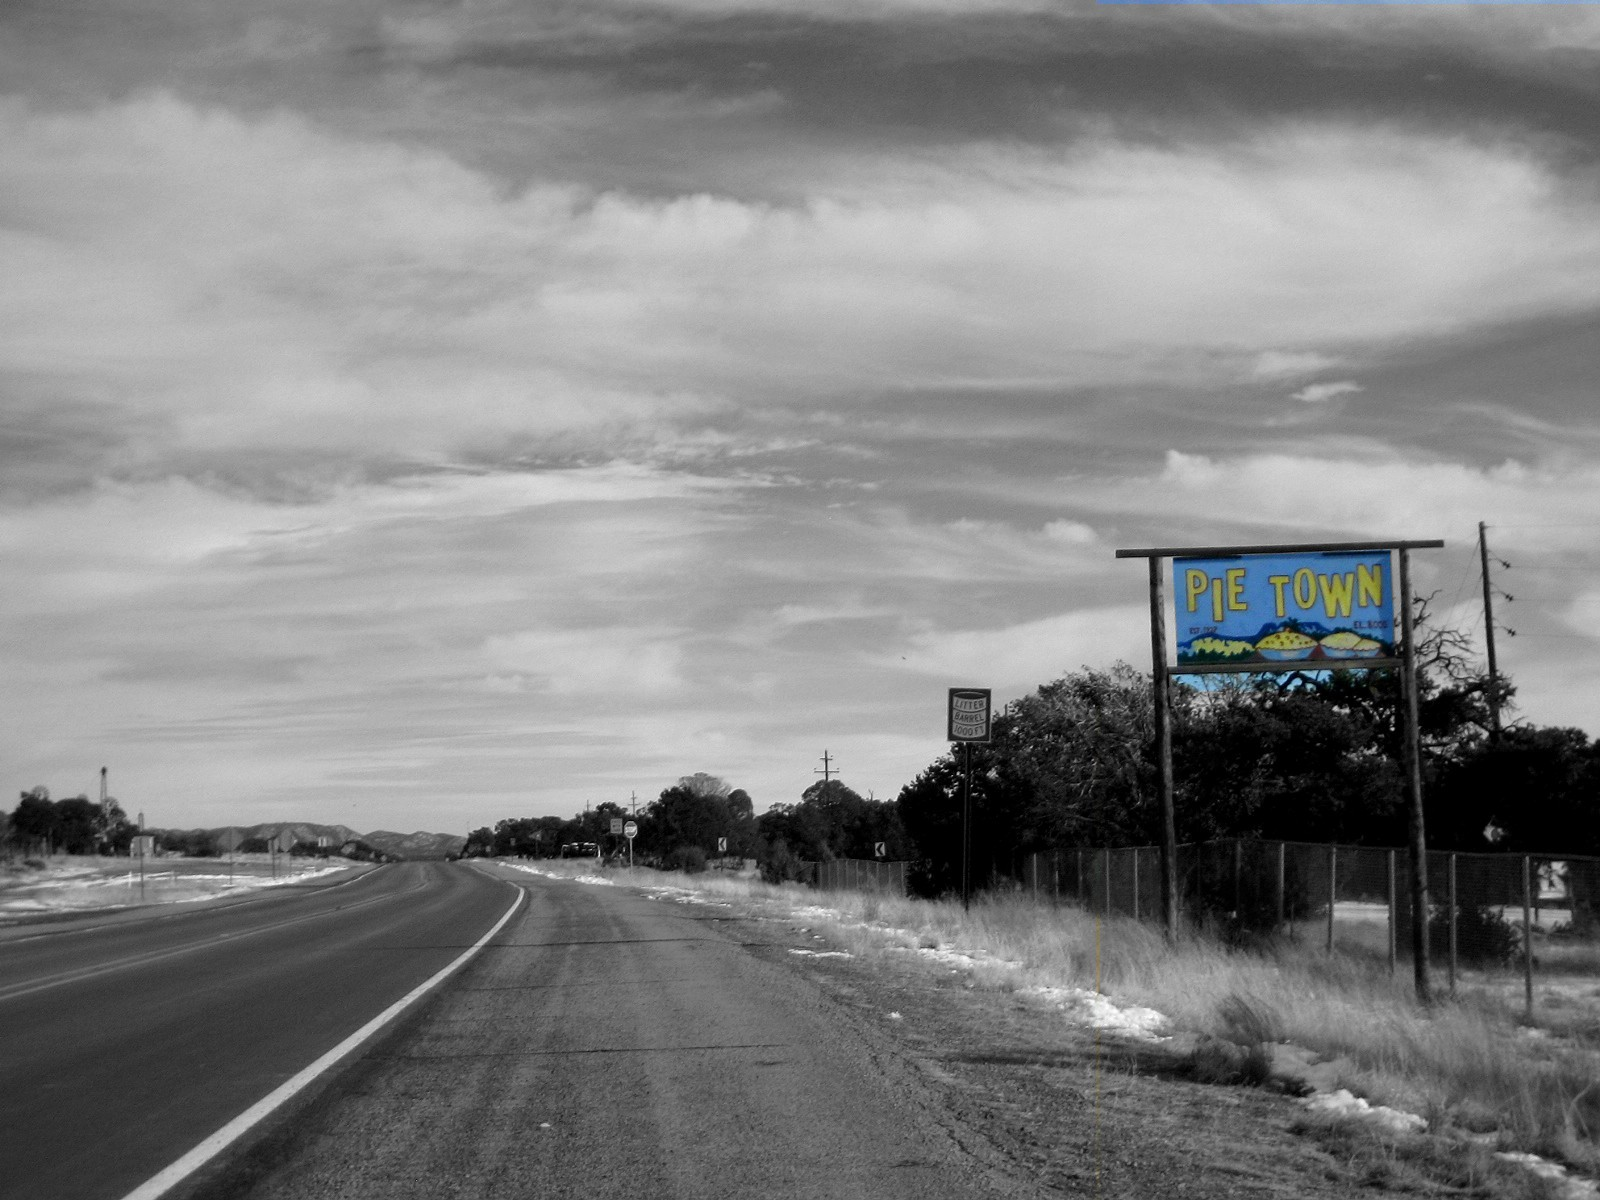 Living Rootless: Pie Town, New Mexico